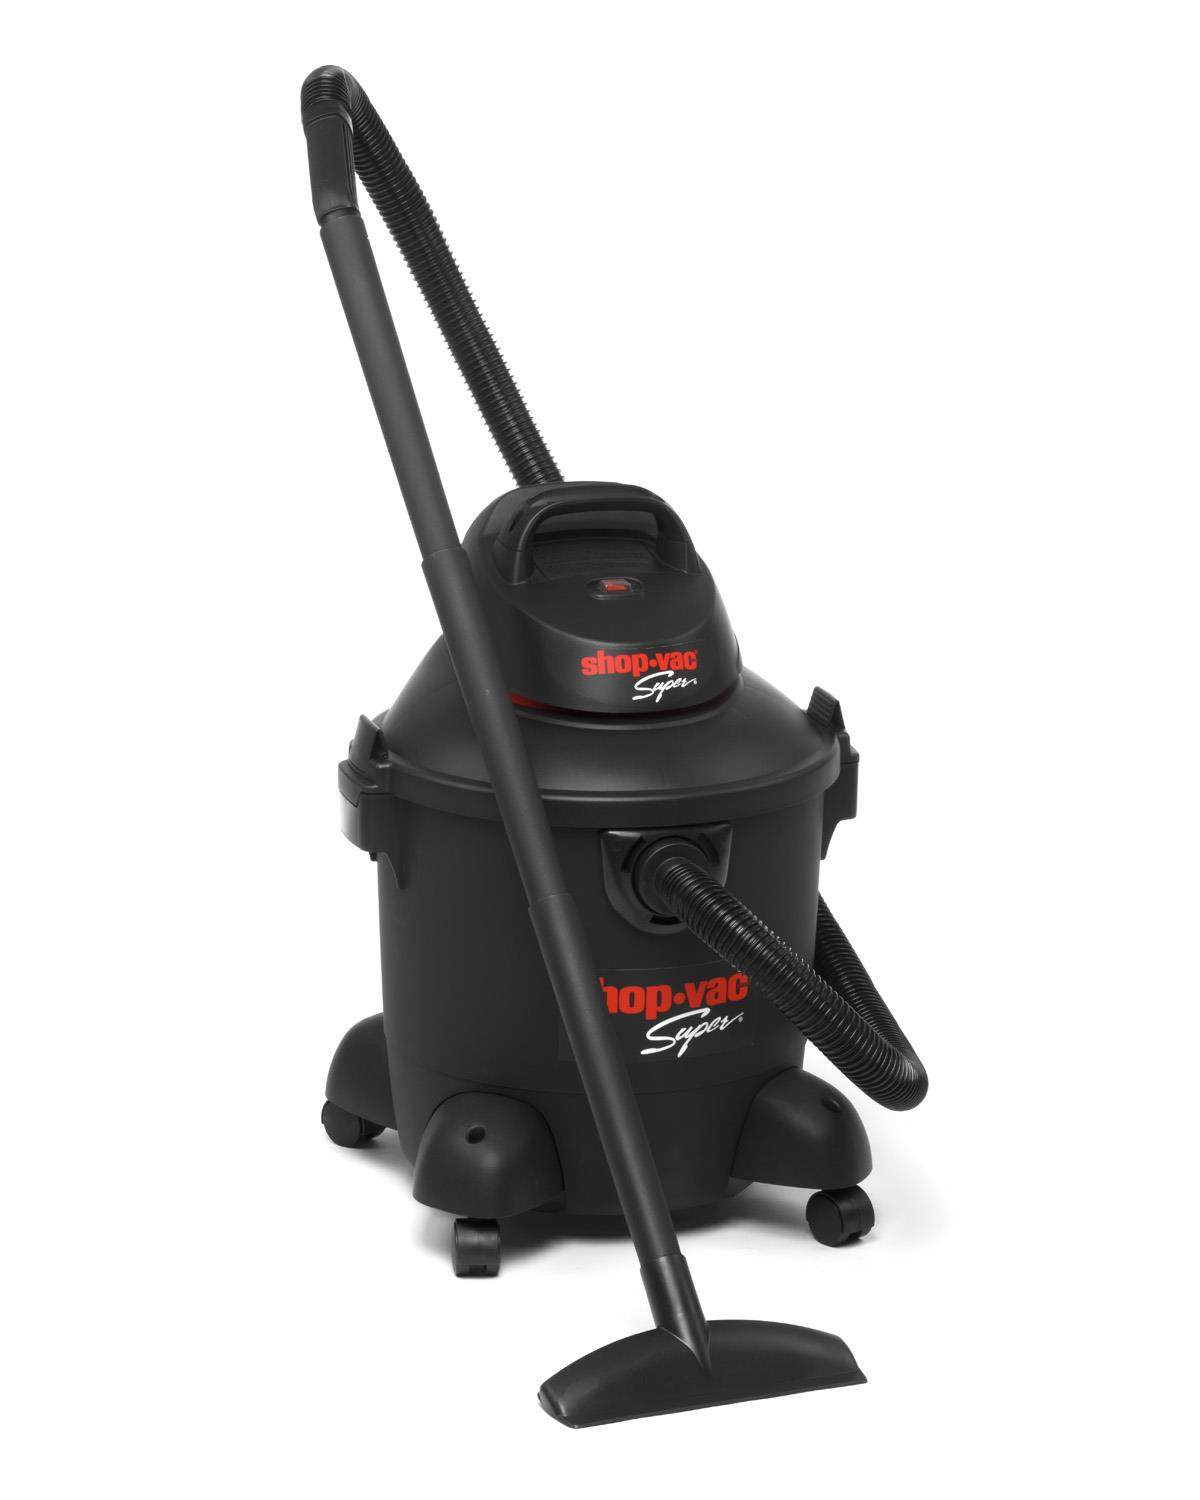 Shop Vac Super 30 Poly 1400 Watt 30l Tank Wet Dry Vacuum Black Decker And Cleaner With